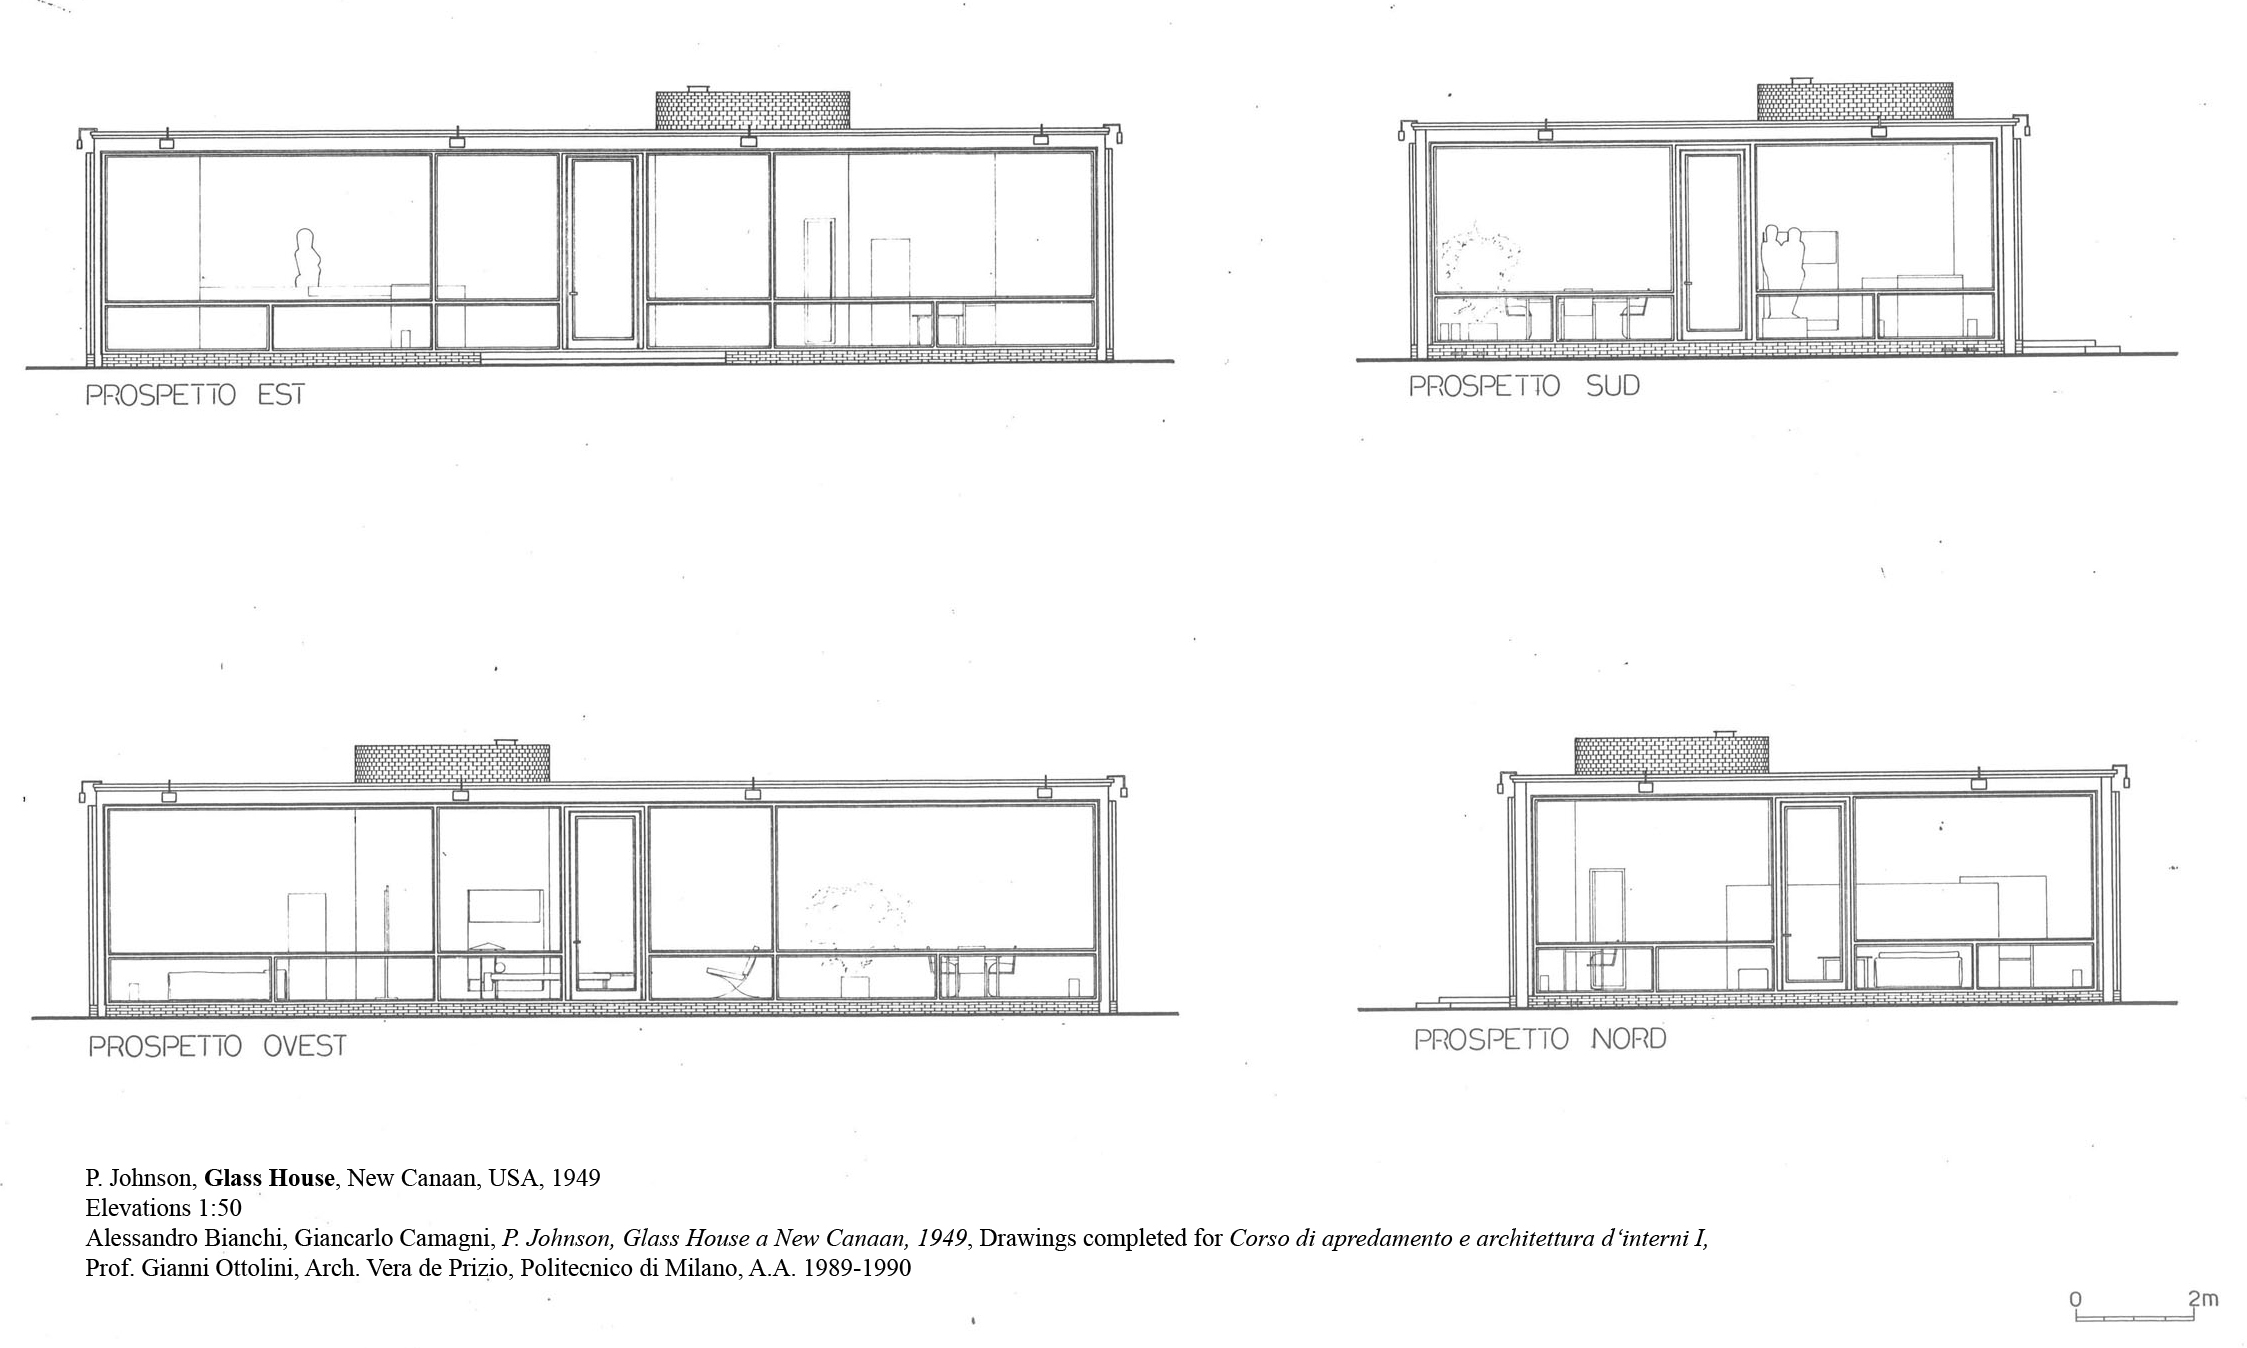 Philip johnson glass house new canaan usa 1949 atlas for Small glass house plans